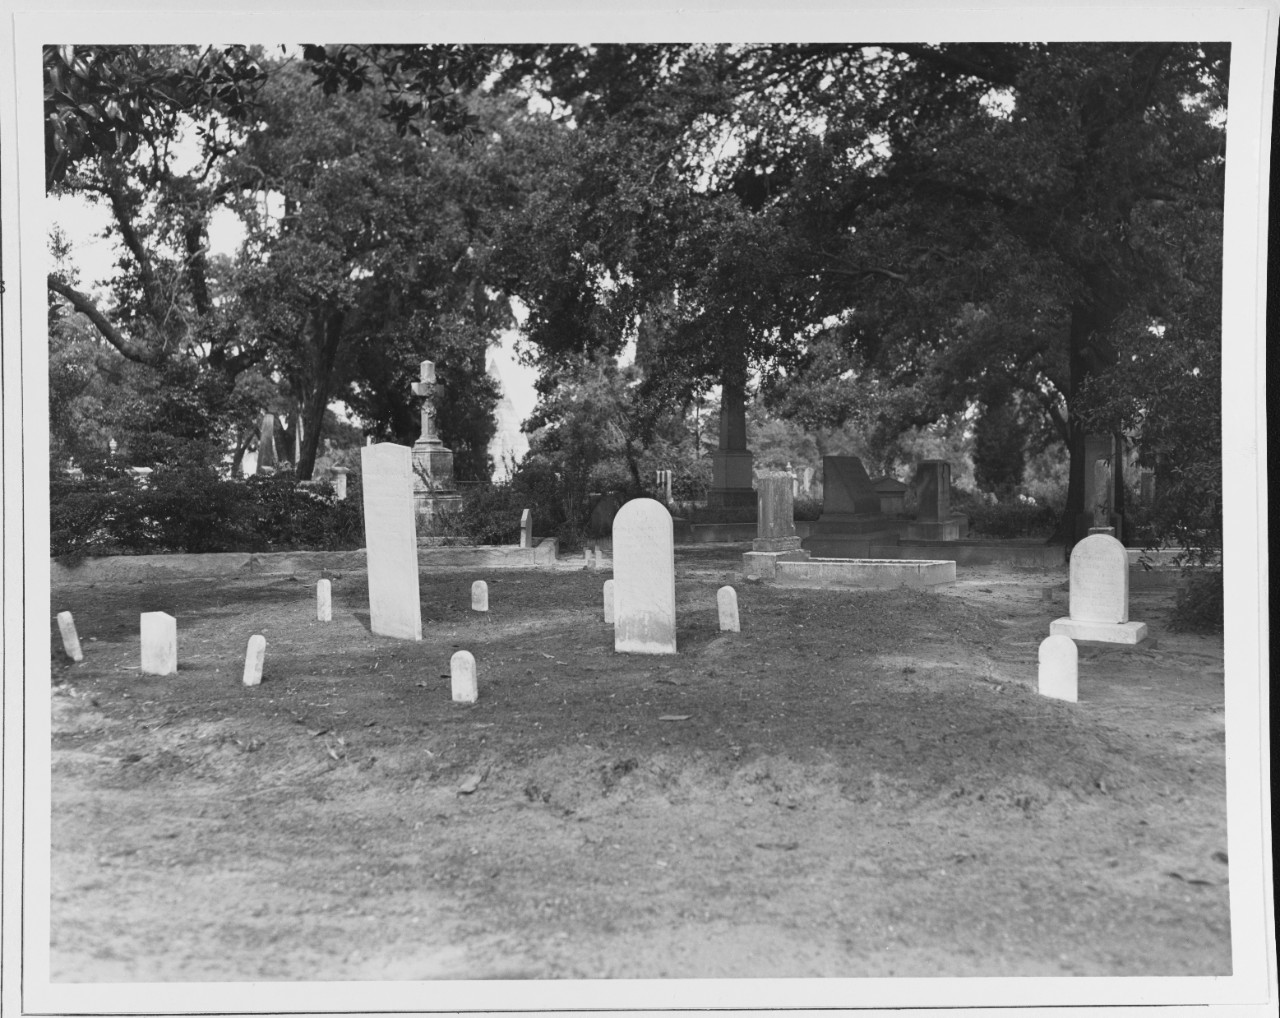 The HUNLEY Plot in Magnolia Cemetery, Charleston South Carolina